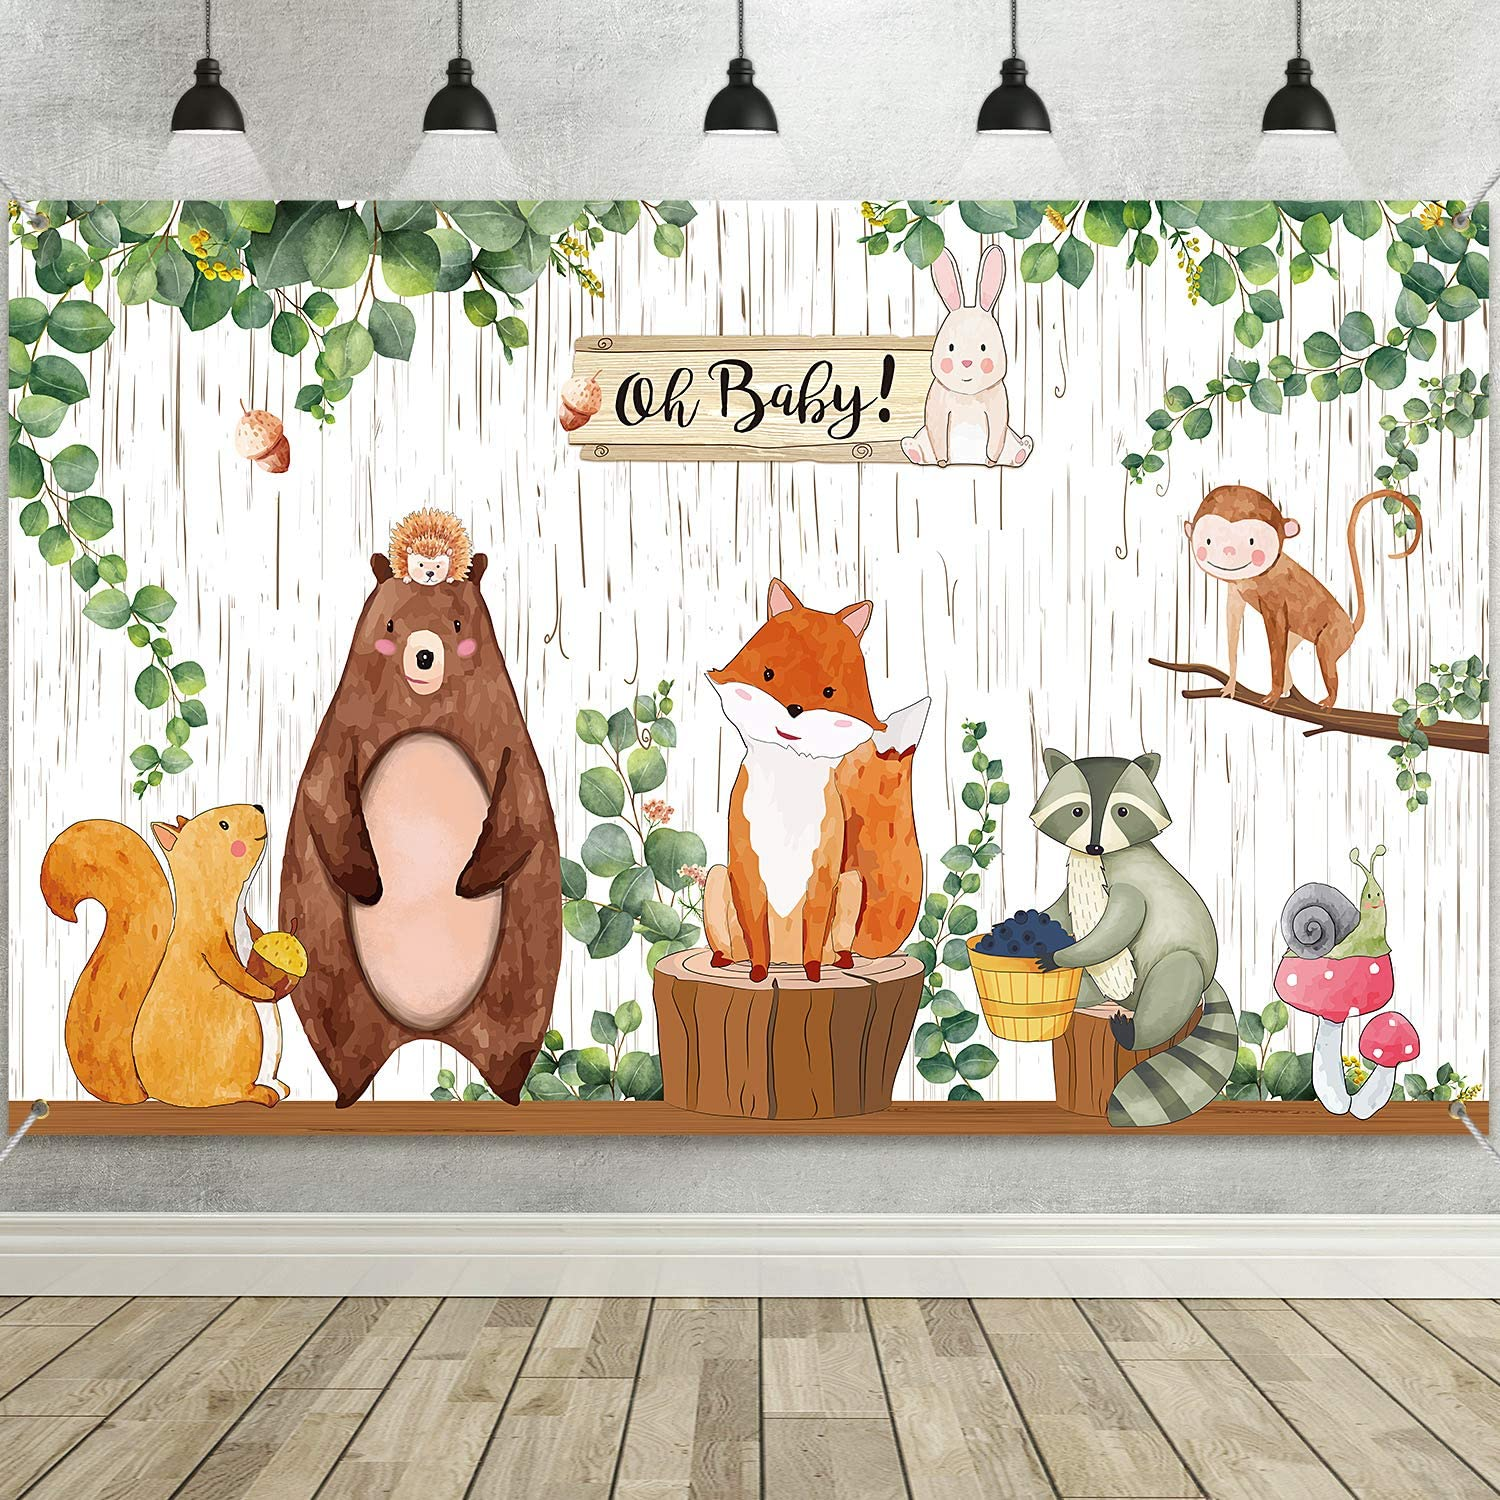 Woodland Baby Shower Backdrop Banner, Large Fabric Jungle Animal Birthday Party Decorations Woodland Creatures Forest Background for Boy or Girl Welcome Party, 72.8 x 43.3 Inch